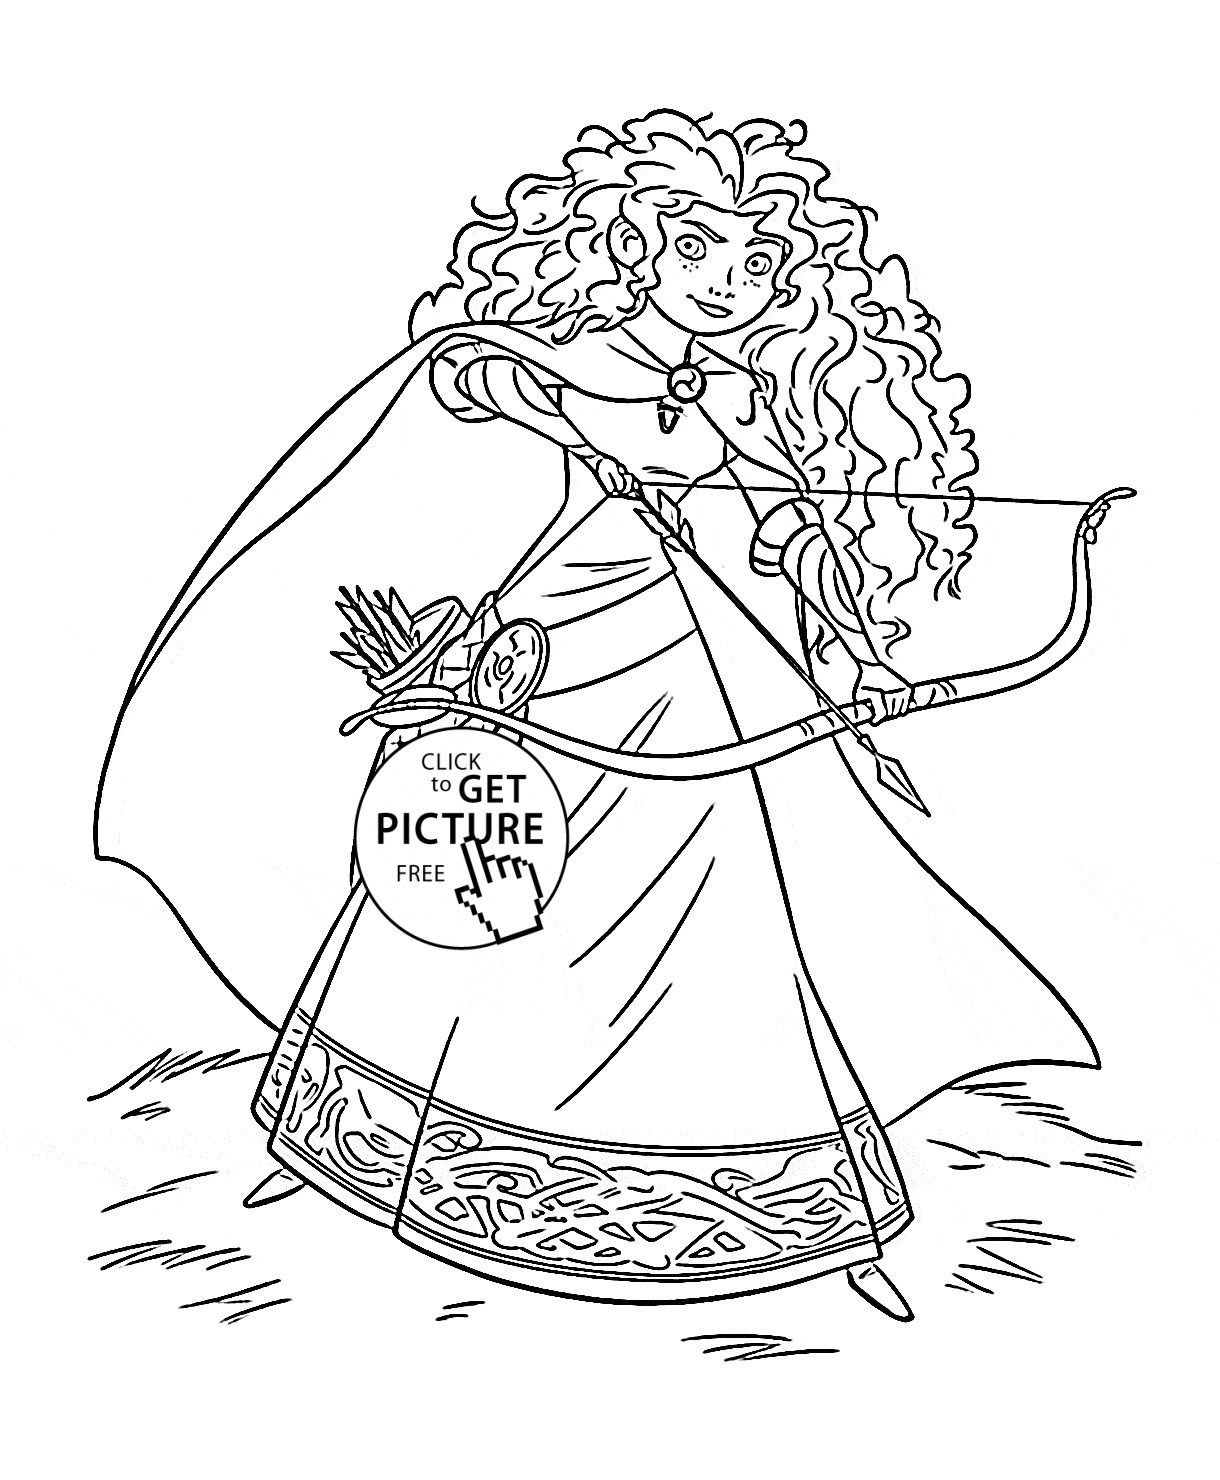 Disney Princess Coloring Page Brave Princess Merida Coloring Page